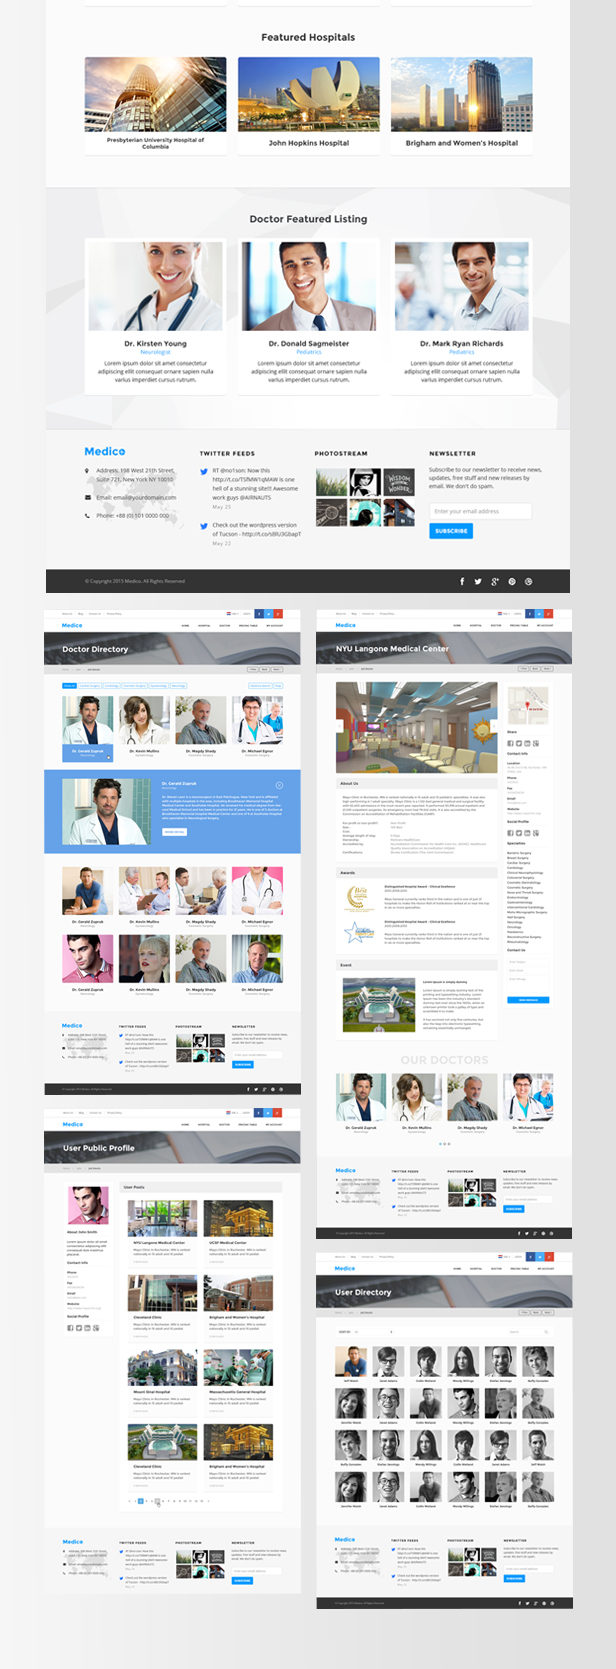 Medical Directory - Hospitals & Doctors Listing Theme - 3